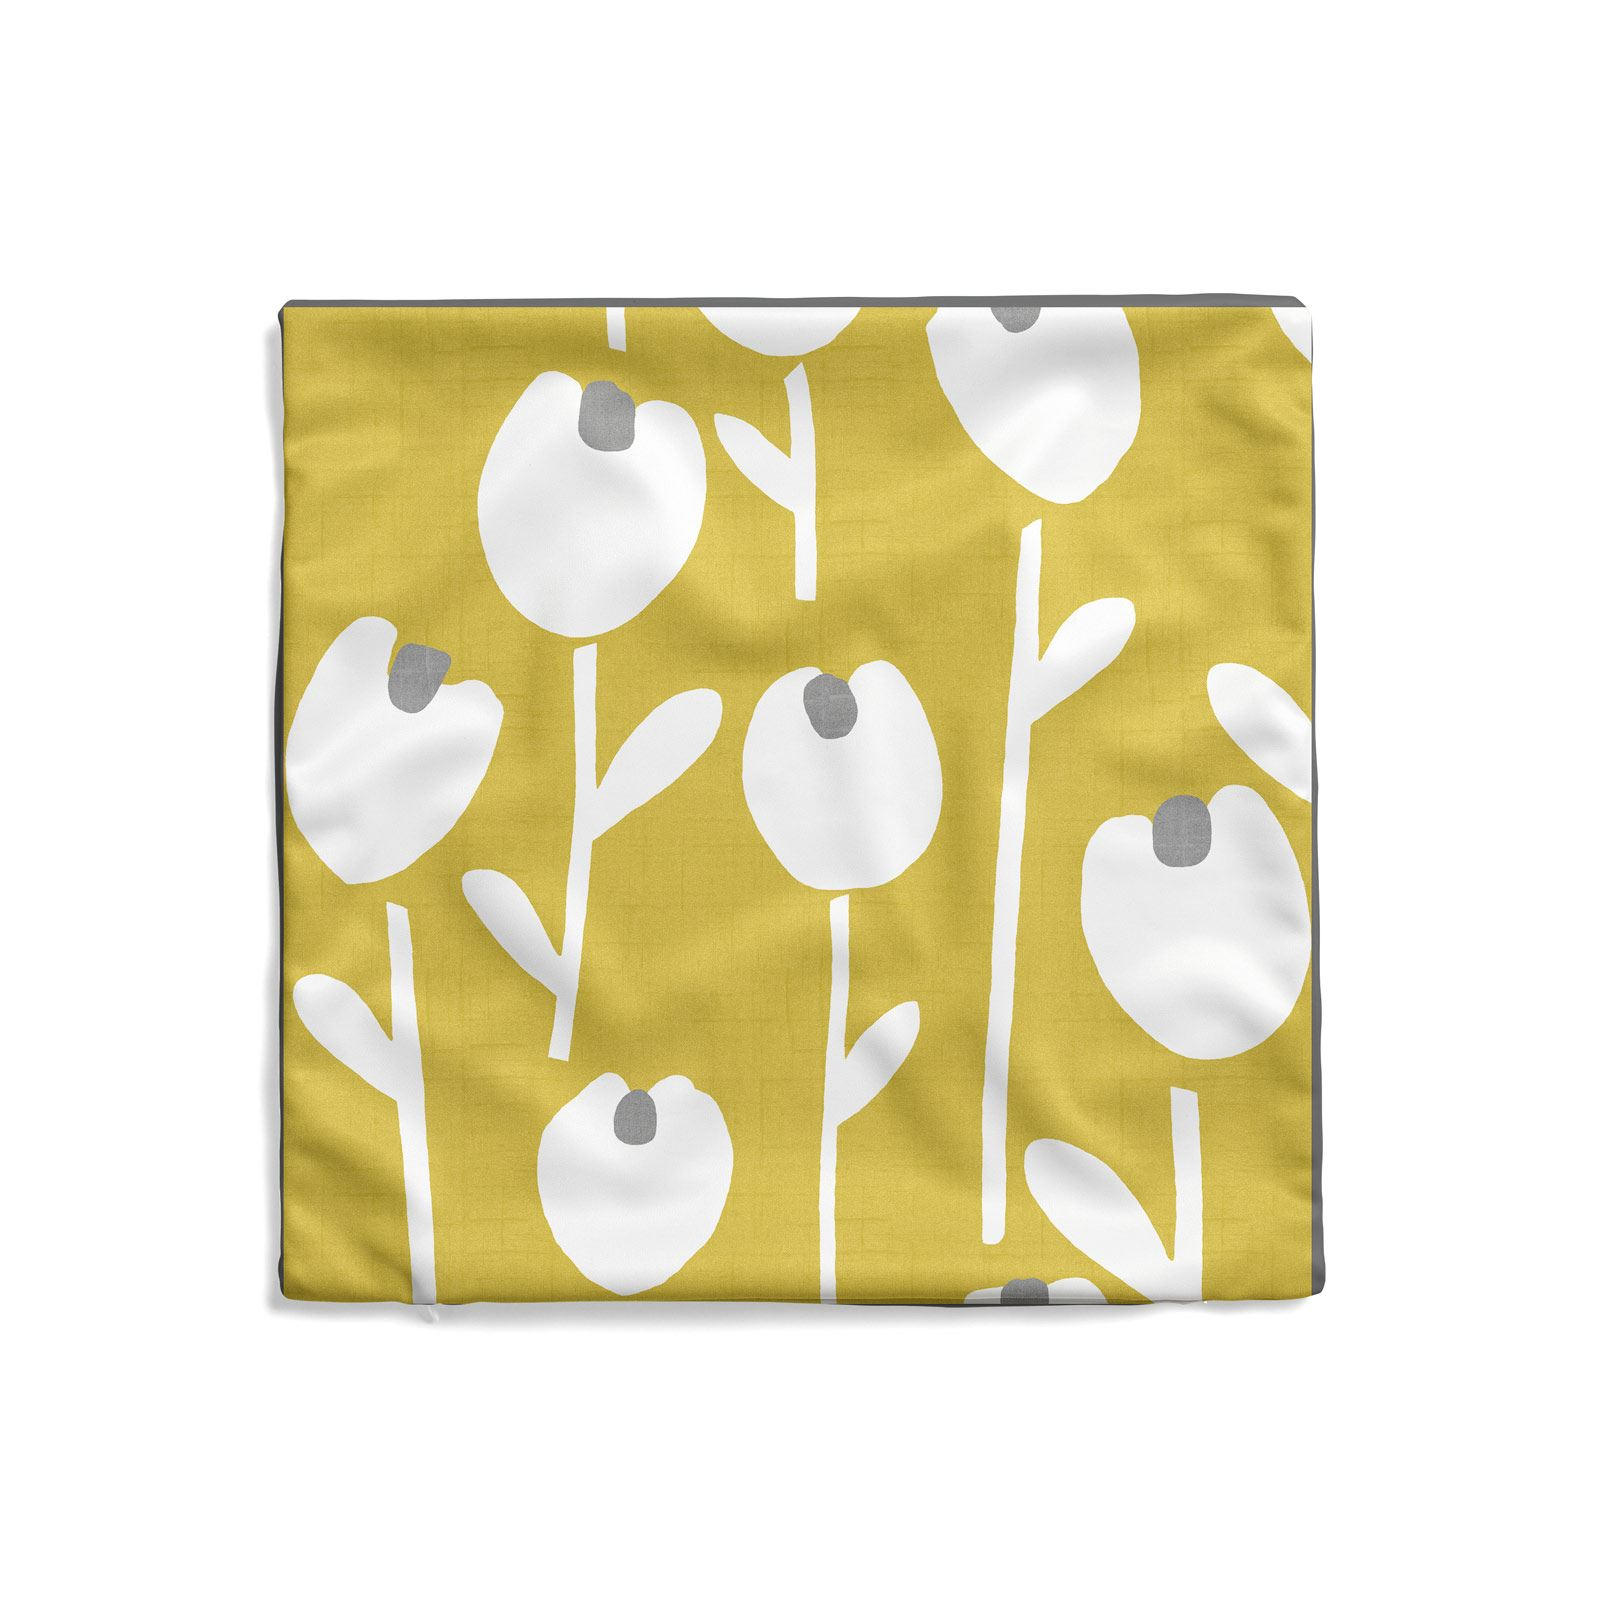 Grey-Ochre-Mustard-Cushion-Cover-Collection-17-034-18-034-Covers-Filled-Cushions thumbnail 10